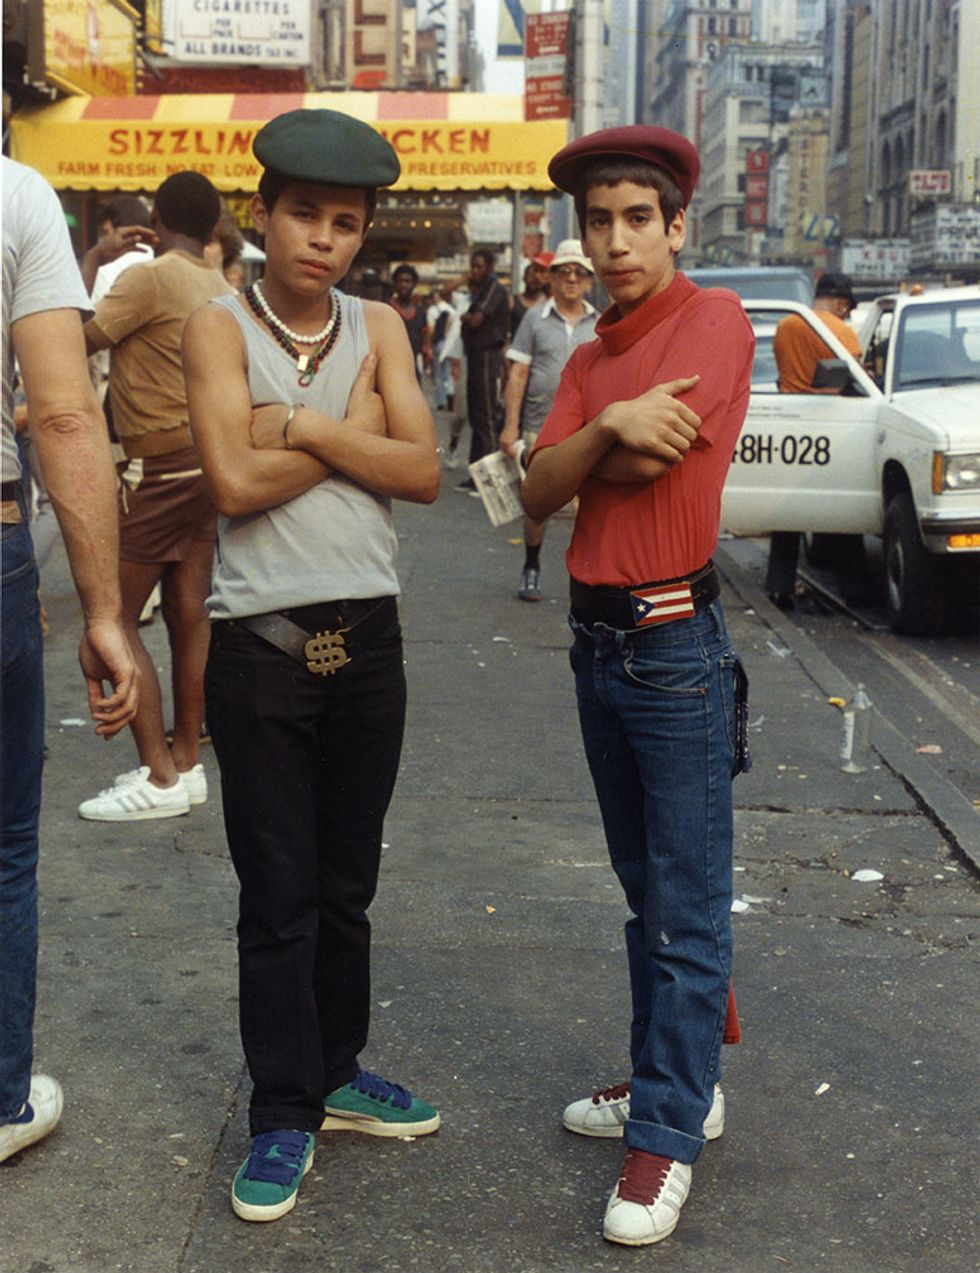 See Jamel Shabazz' 80s Brooklyn in Iconic Photos From a New Exhibition